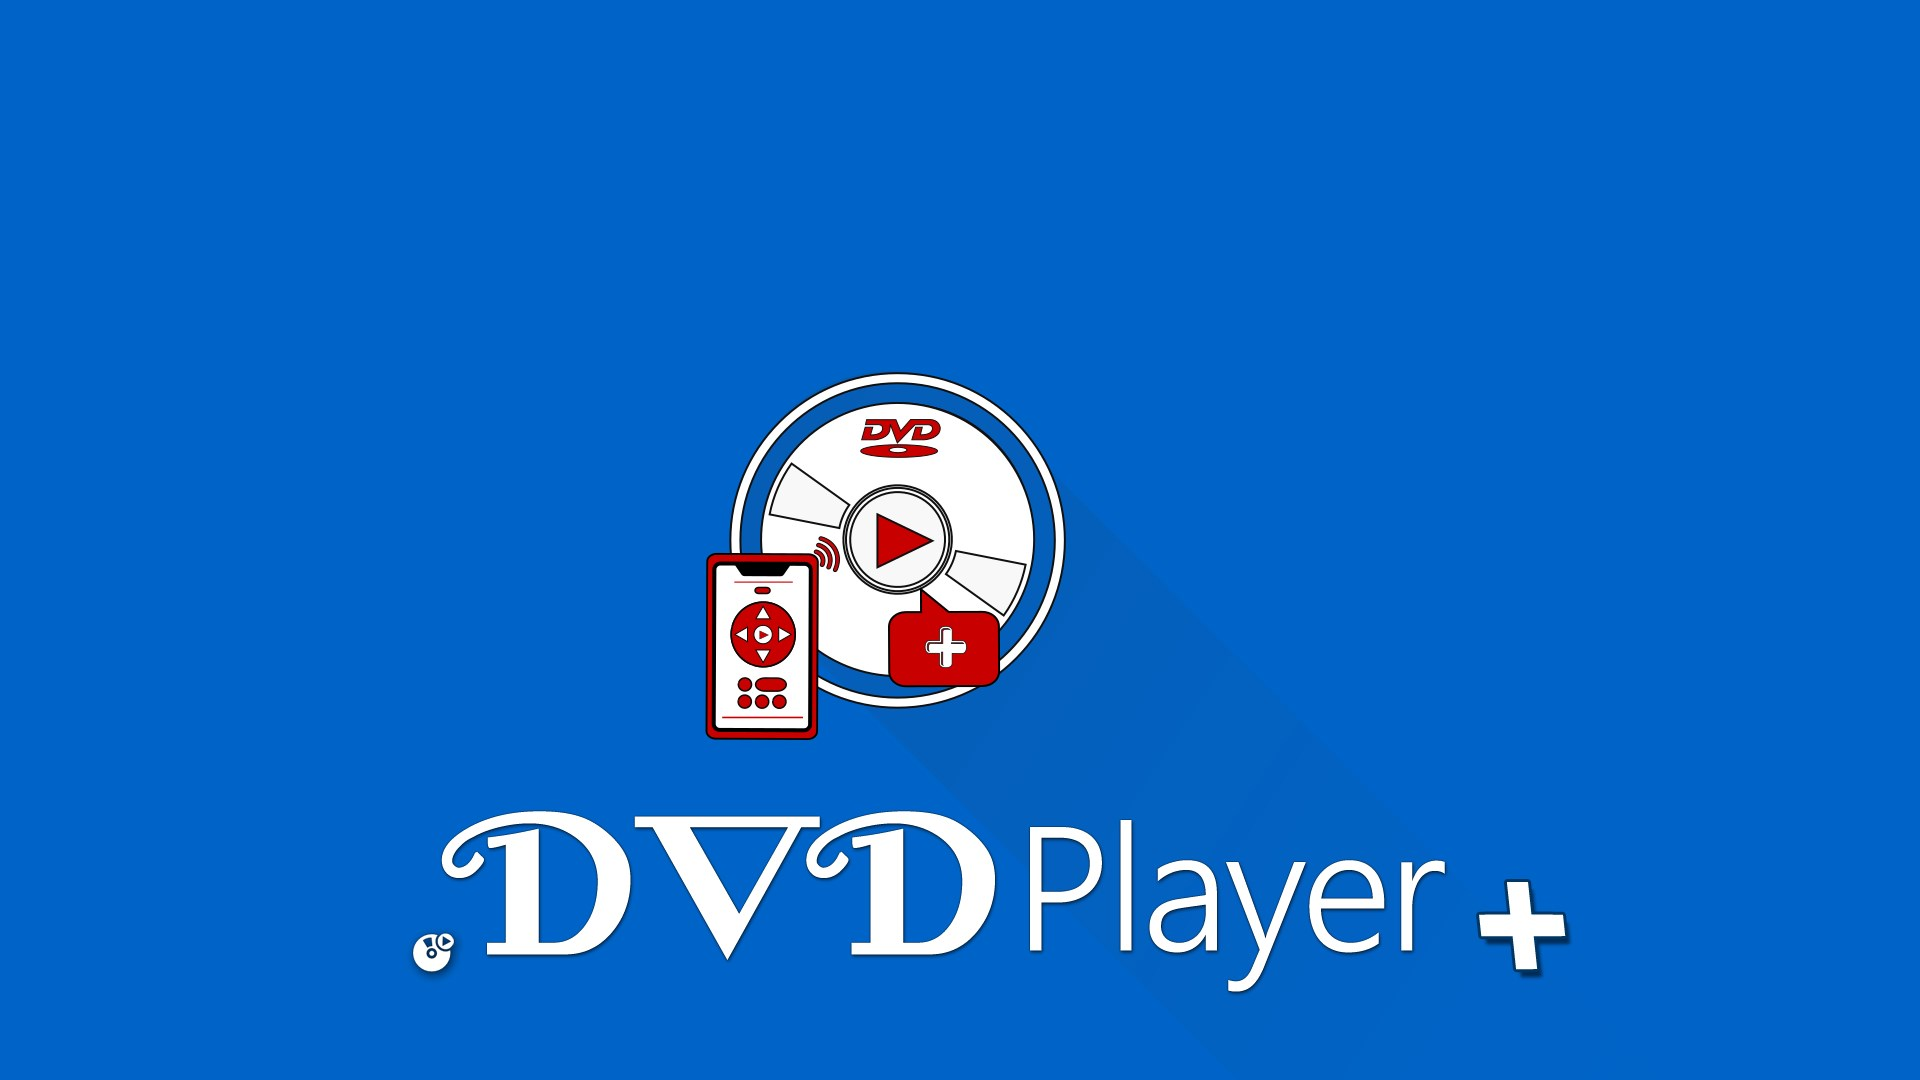 microsoft dvd player for windows 7 free download